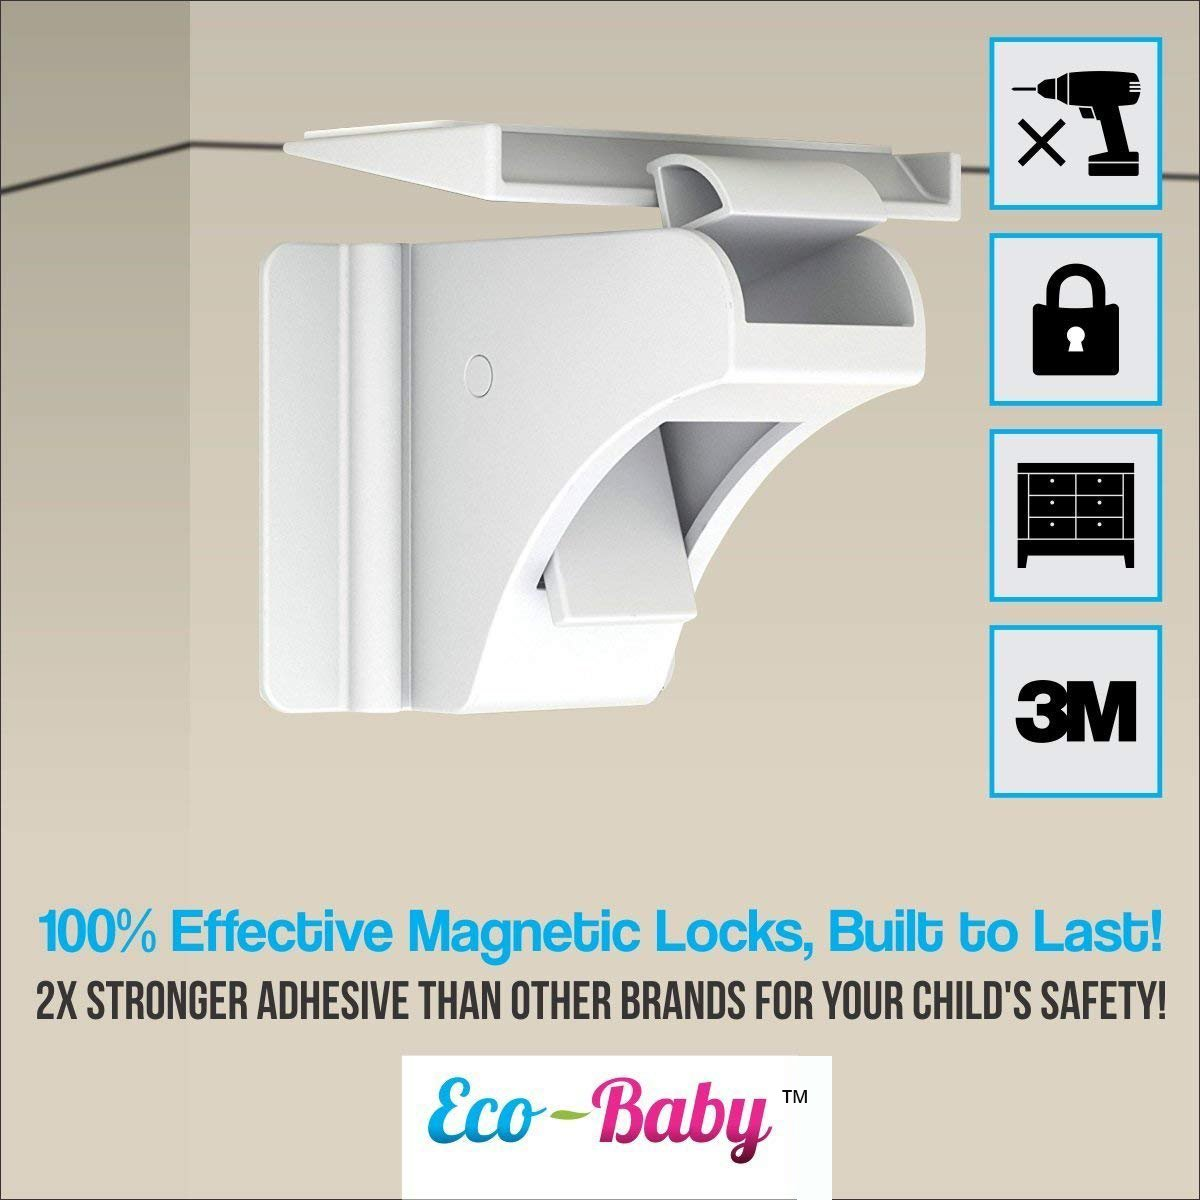 Baby & Child Proof Cabinet & Drawers Magnetic Safety Locks - Heavy Duty Locking System (6 Pack) by Ecobaby (Image #4)